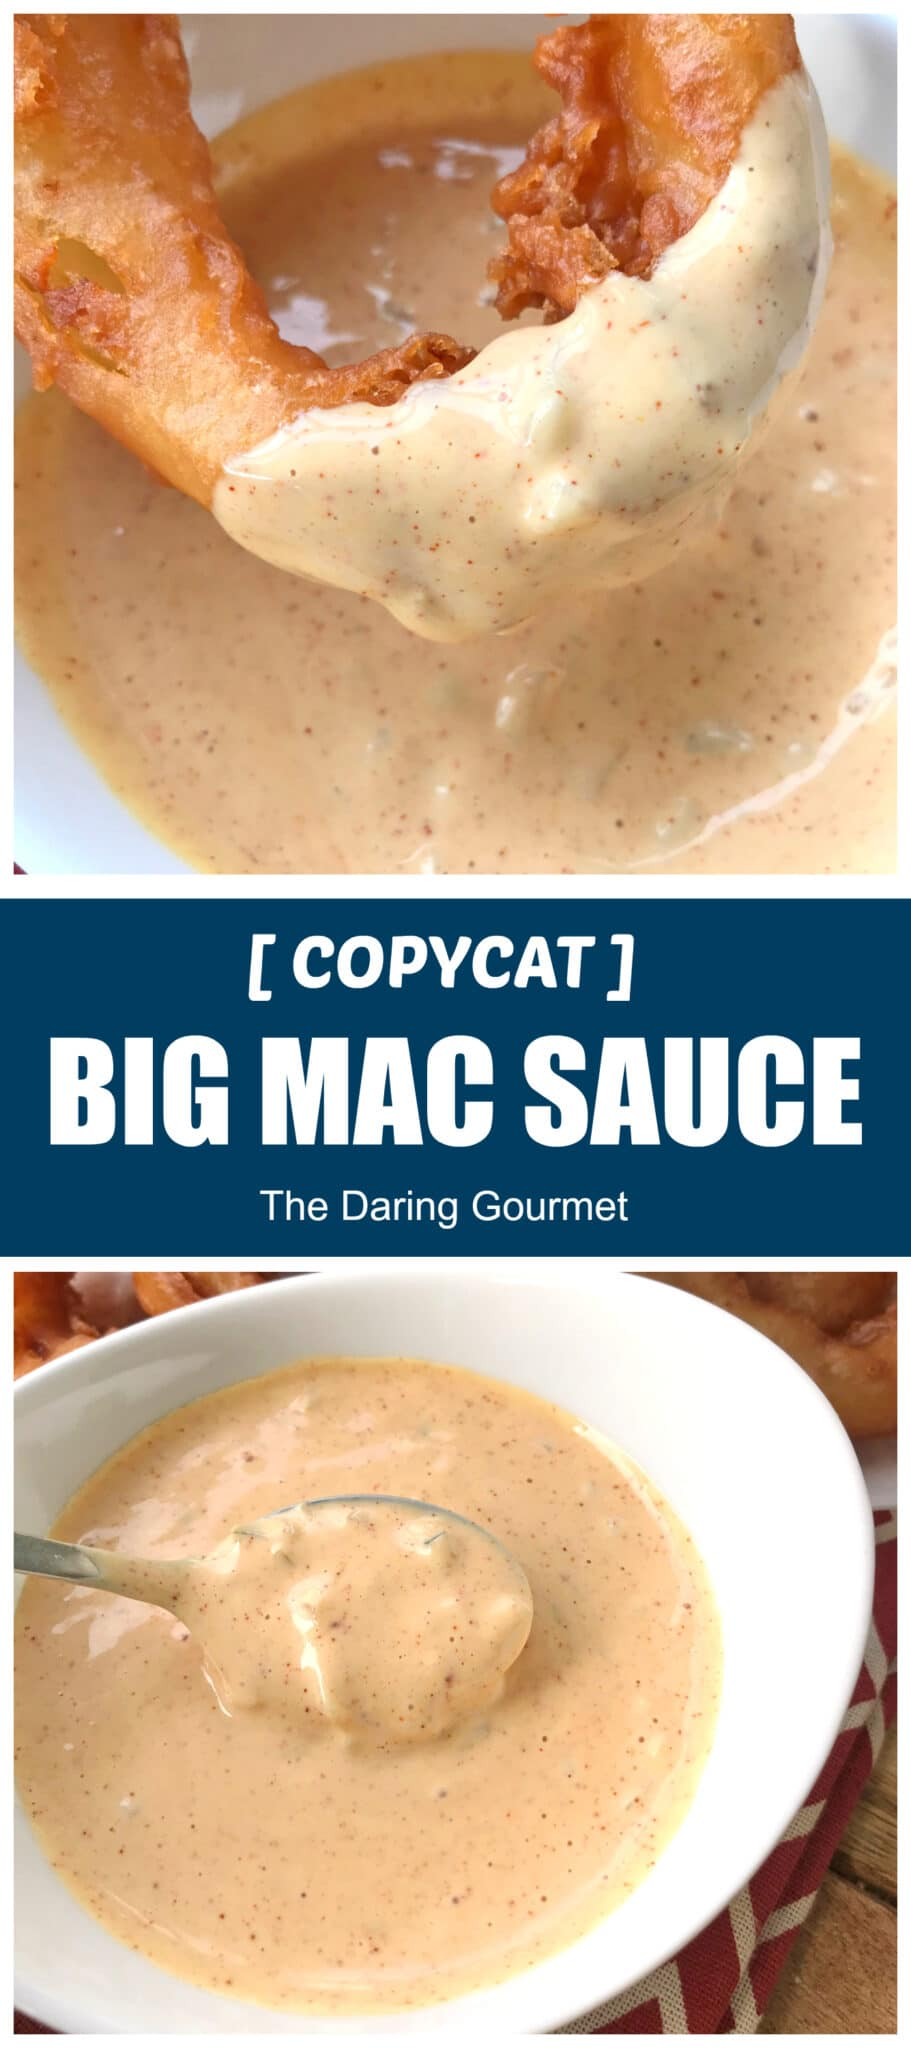 big mac sauce recipe best copycat mcdonald's special condiment dip dressing